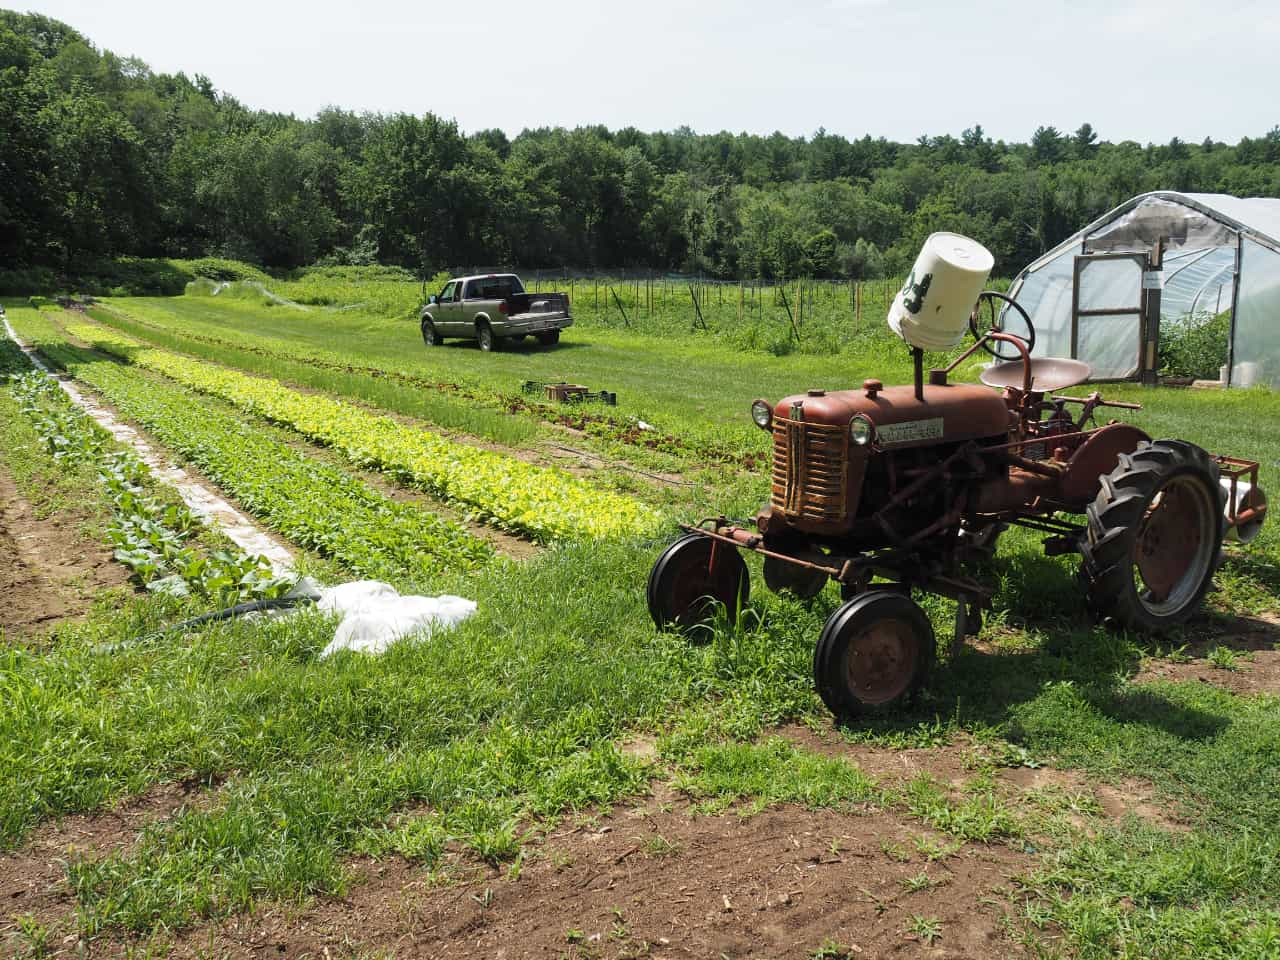 Lettuce Bed, Truck and Tractor